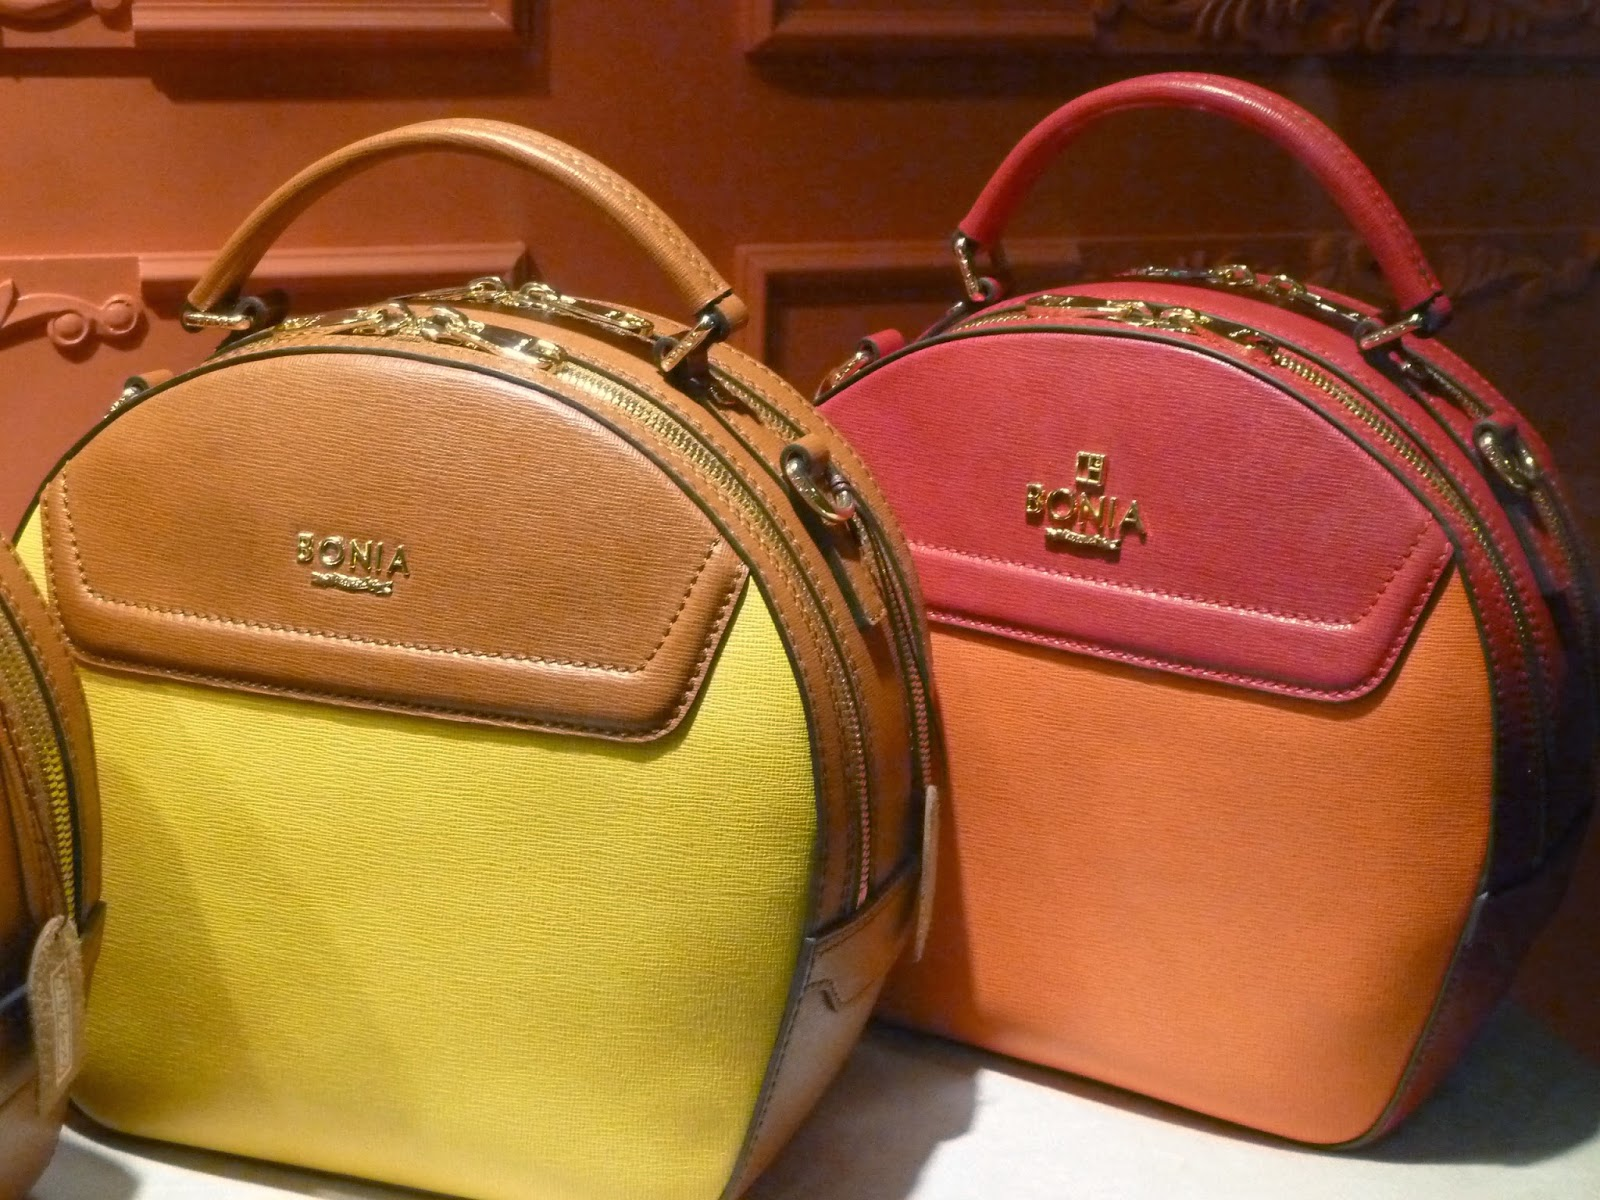 Bonia Launches New Collection Including The Sensational Sonia Bag Designed By Taiwan Top Actresodel Sui Which Is Special Order Only But